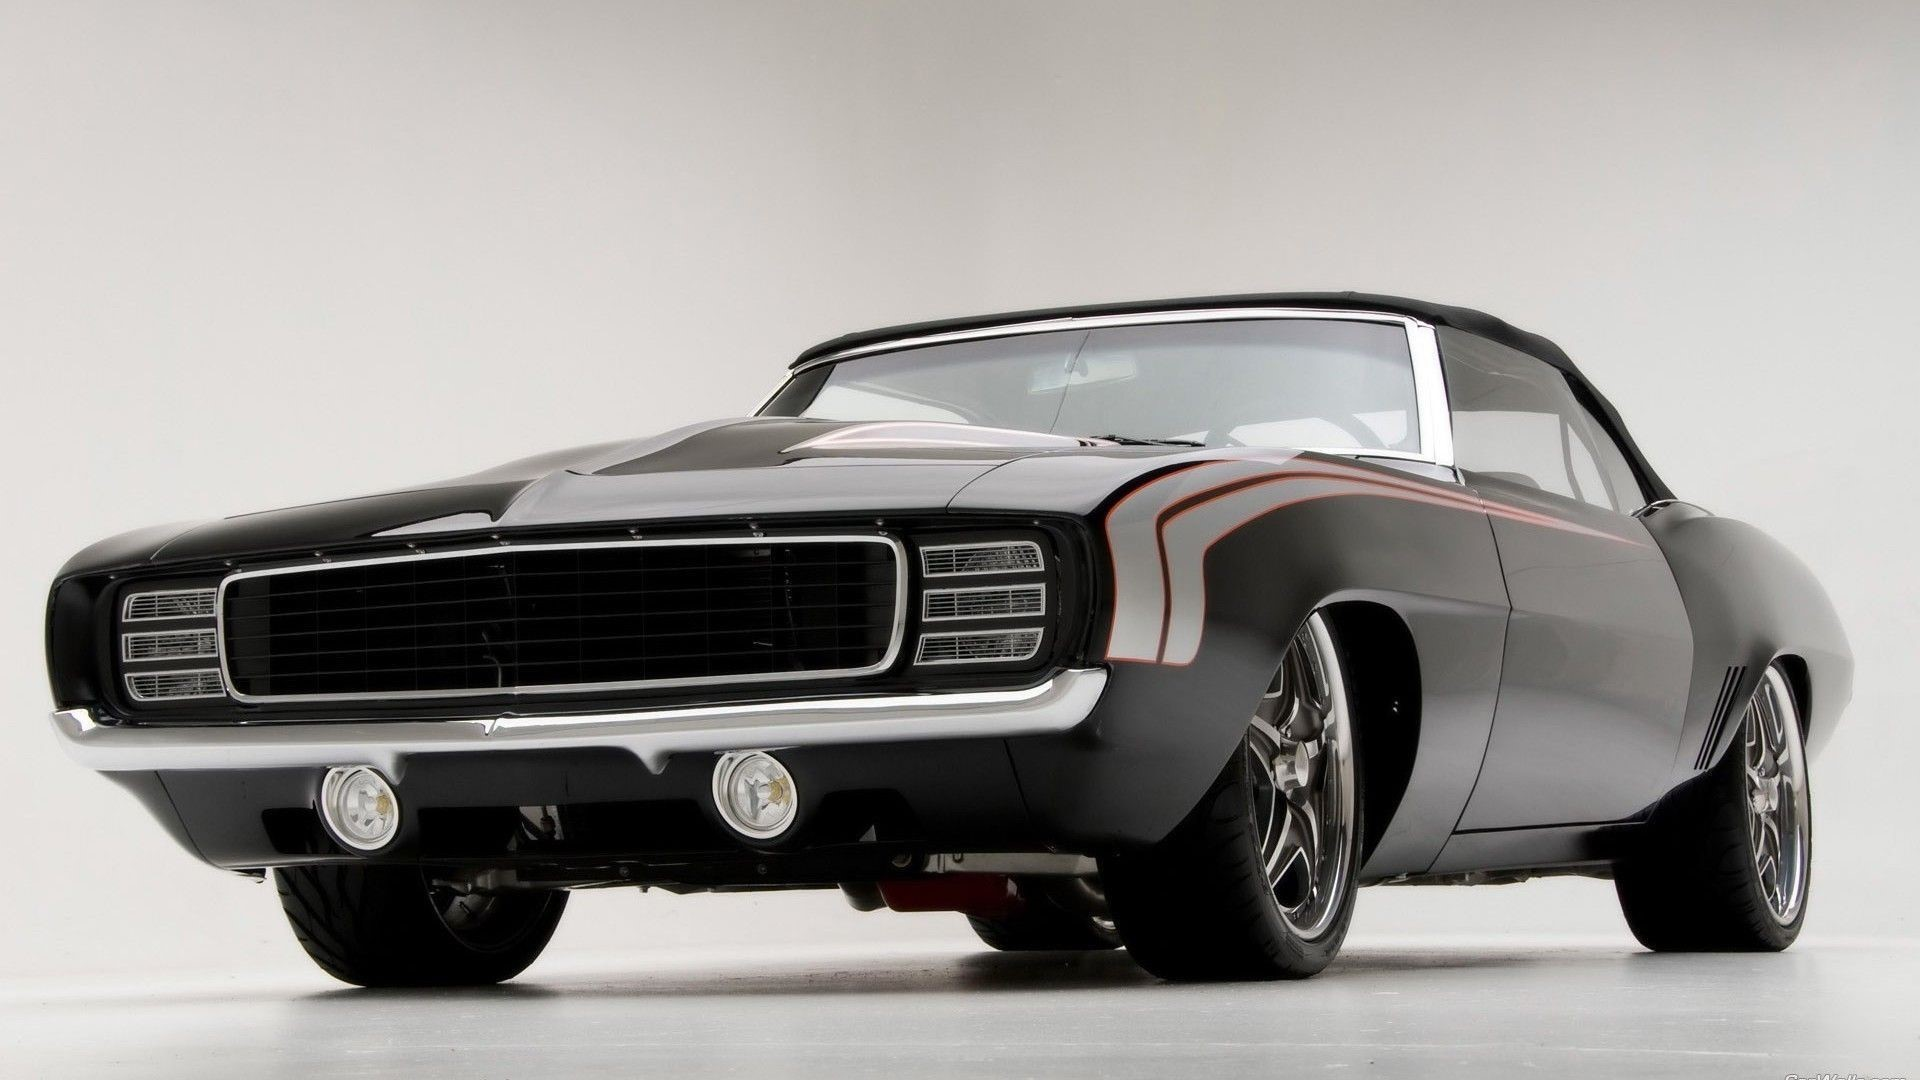 Chevy Muscle Car UHD Wallpapers